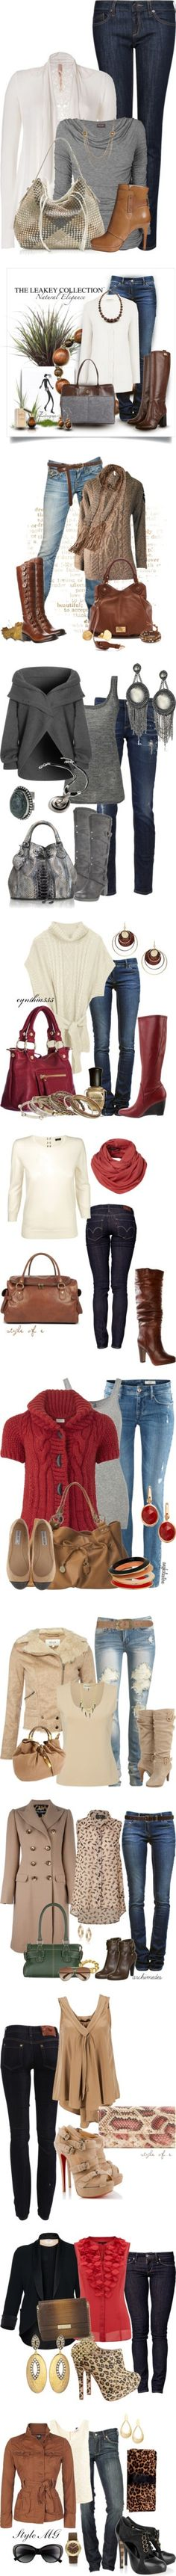 """The Skinny Jean Syndrome"" by esha2001 on Polyvore..Fall looks"